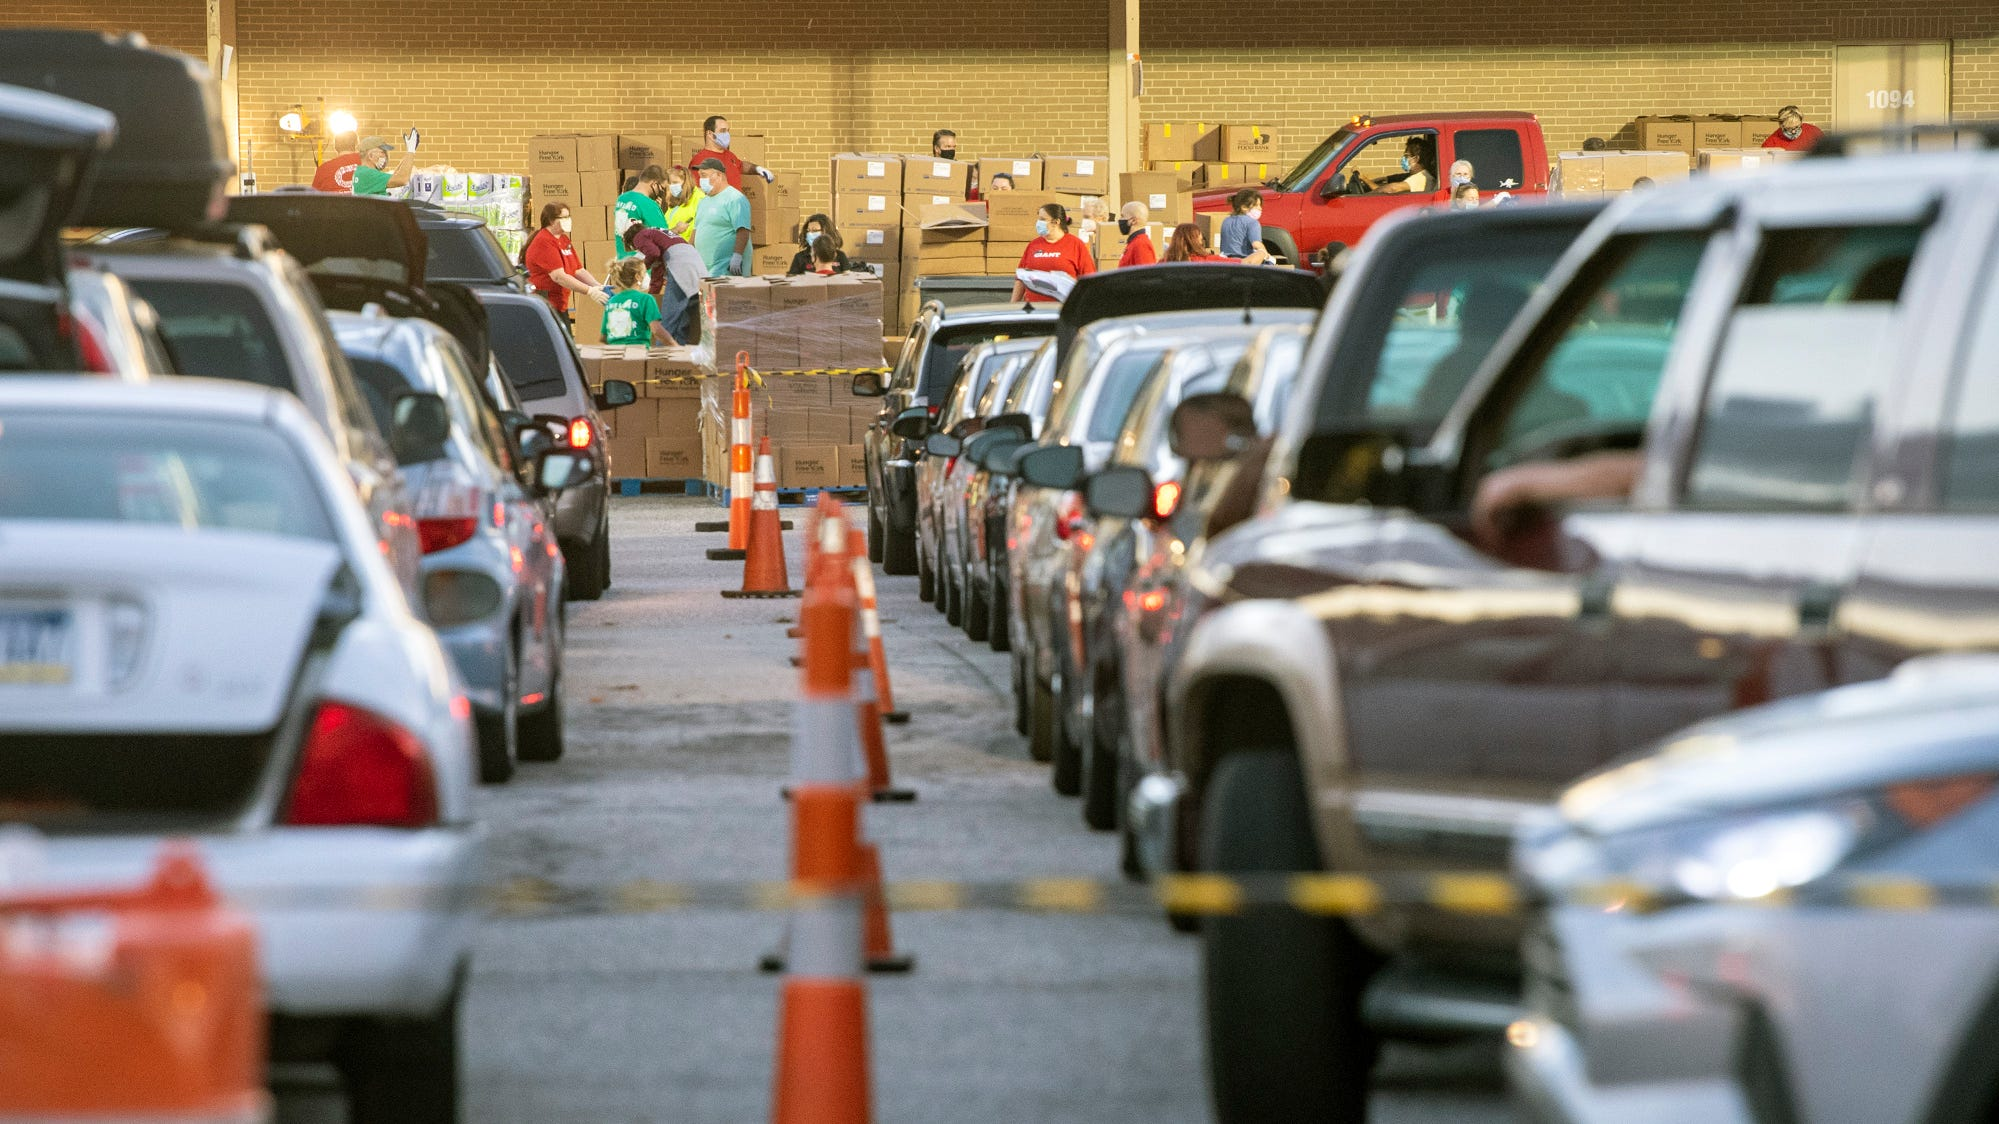 www.ydr.com: Evictions, food lines, students living in a car: Pa. still struggling in COVID-19 economy